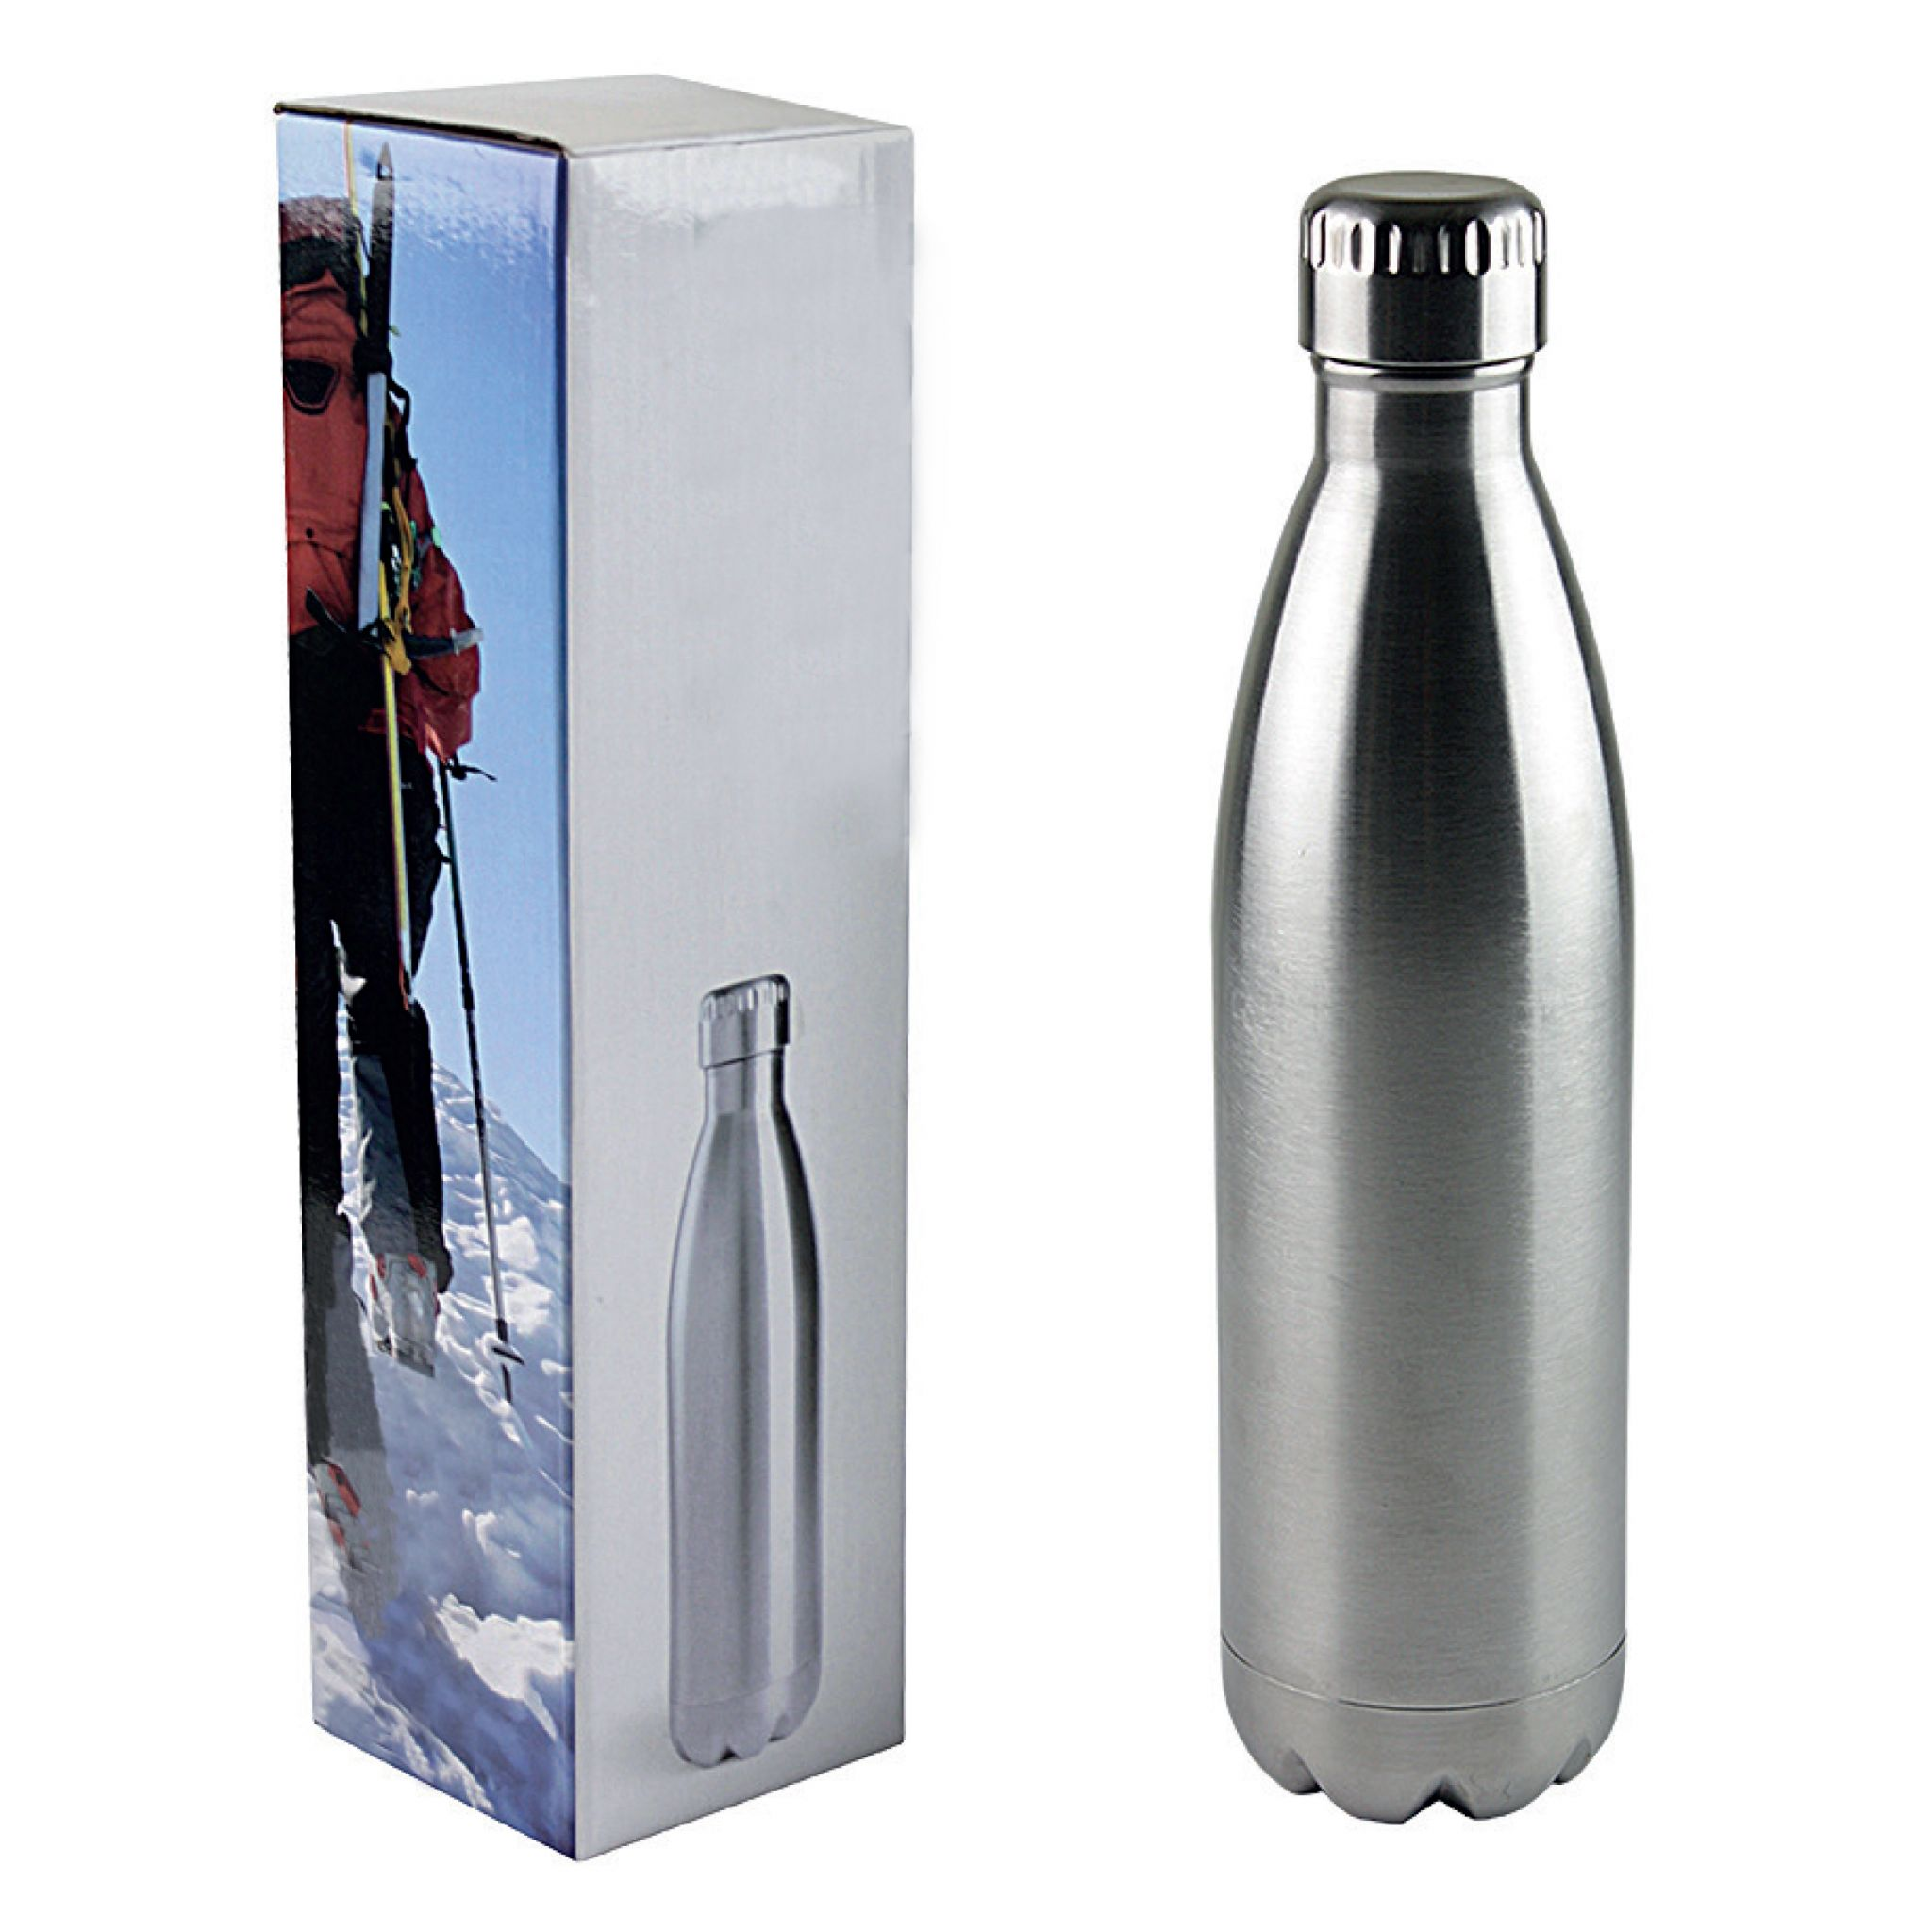 PU Leather Travel Thermal Mug,17 oz COOSUN Horses Animated Stainless Steel Flasks Water Bottle Vacuum Insulated Cup Leak Proof Double Vacuum Bottle